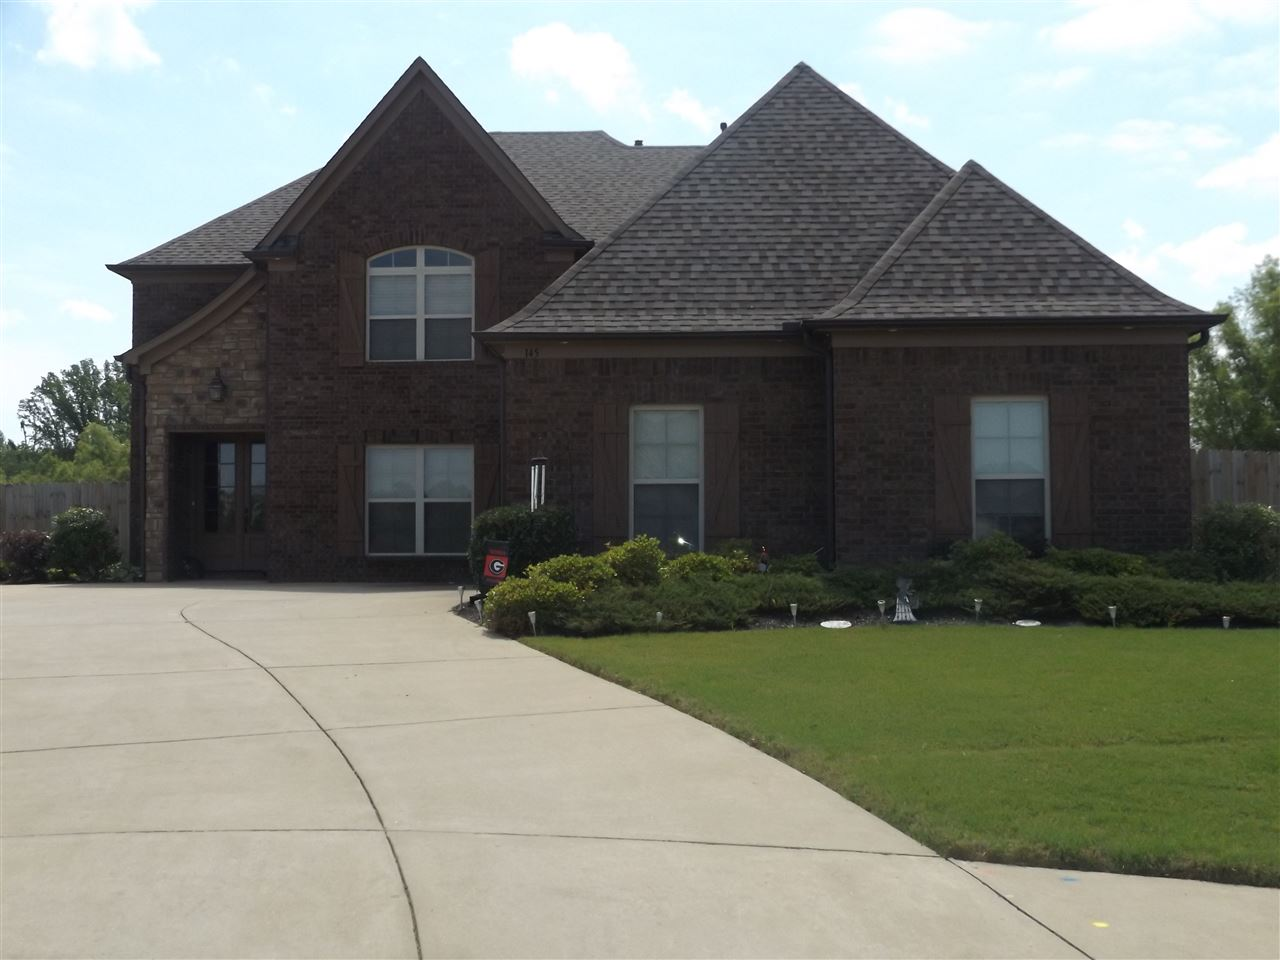 145 CHEROKEE CIR, OAKLAND, TN 38060